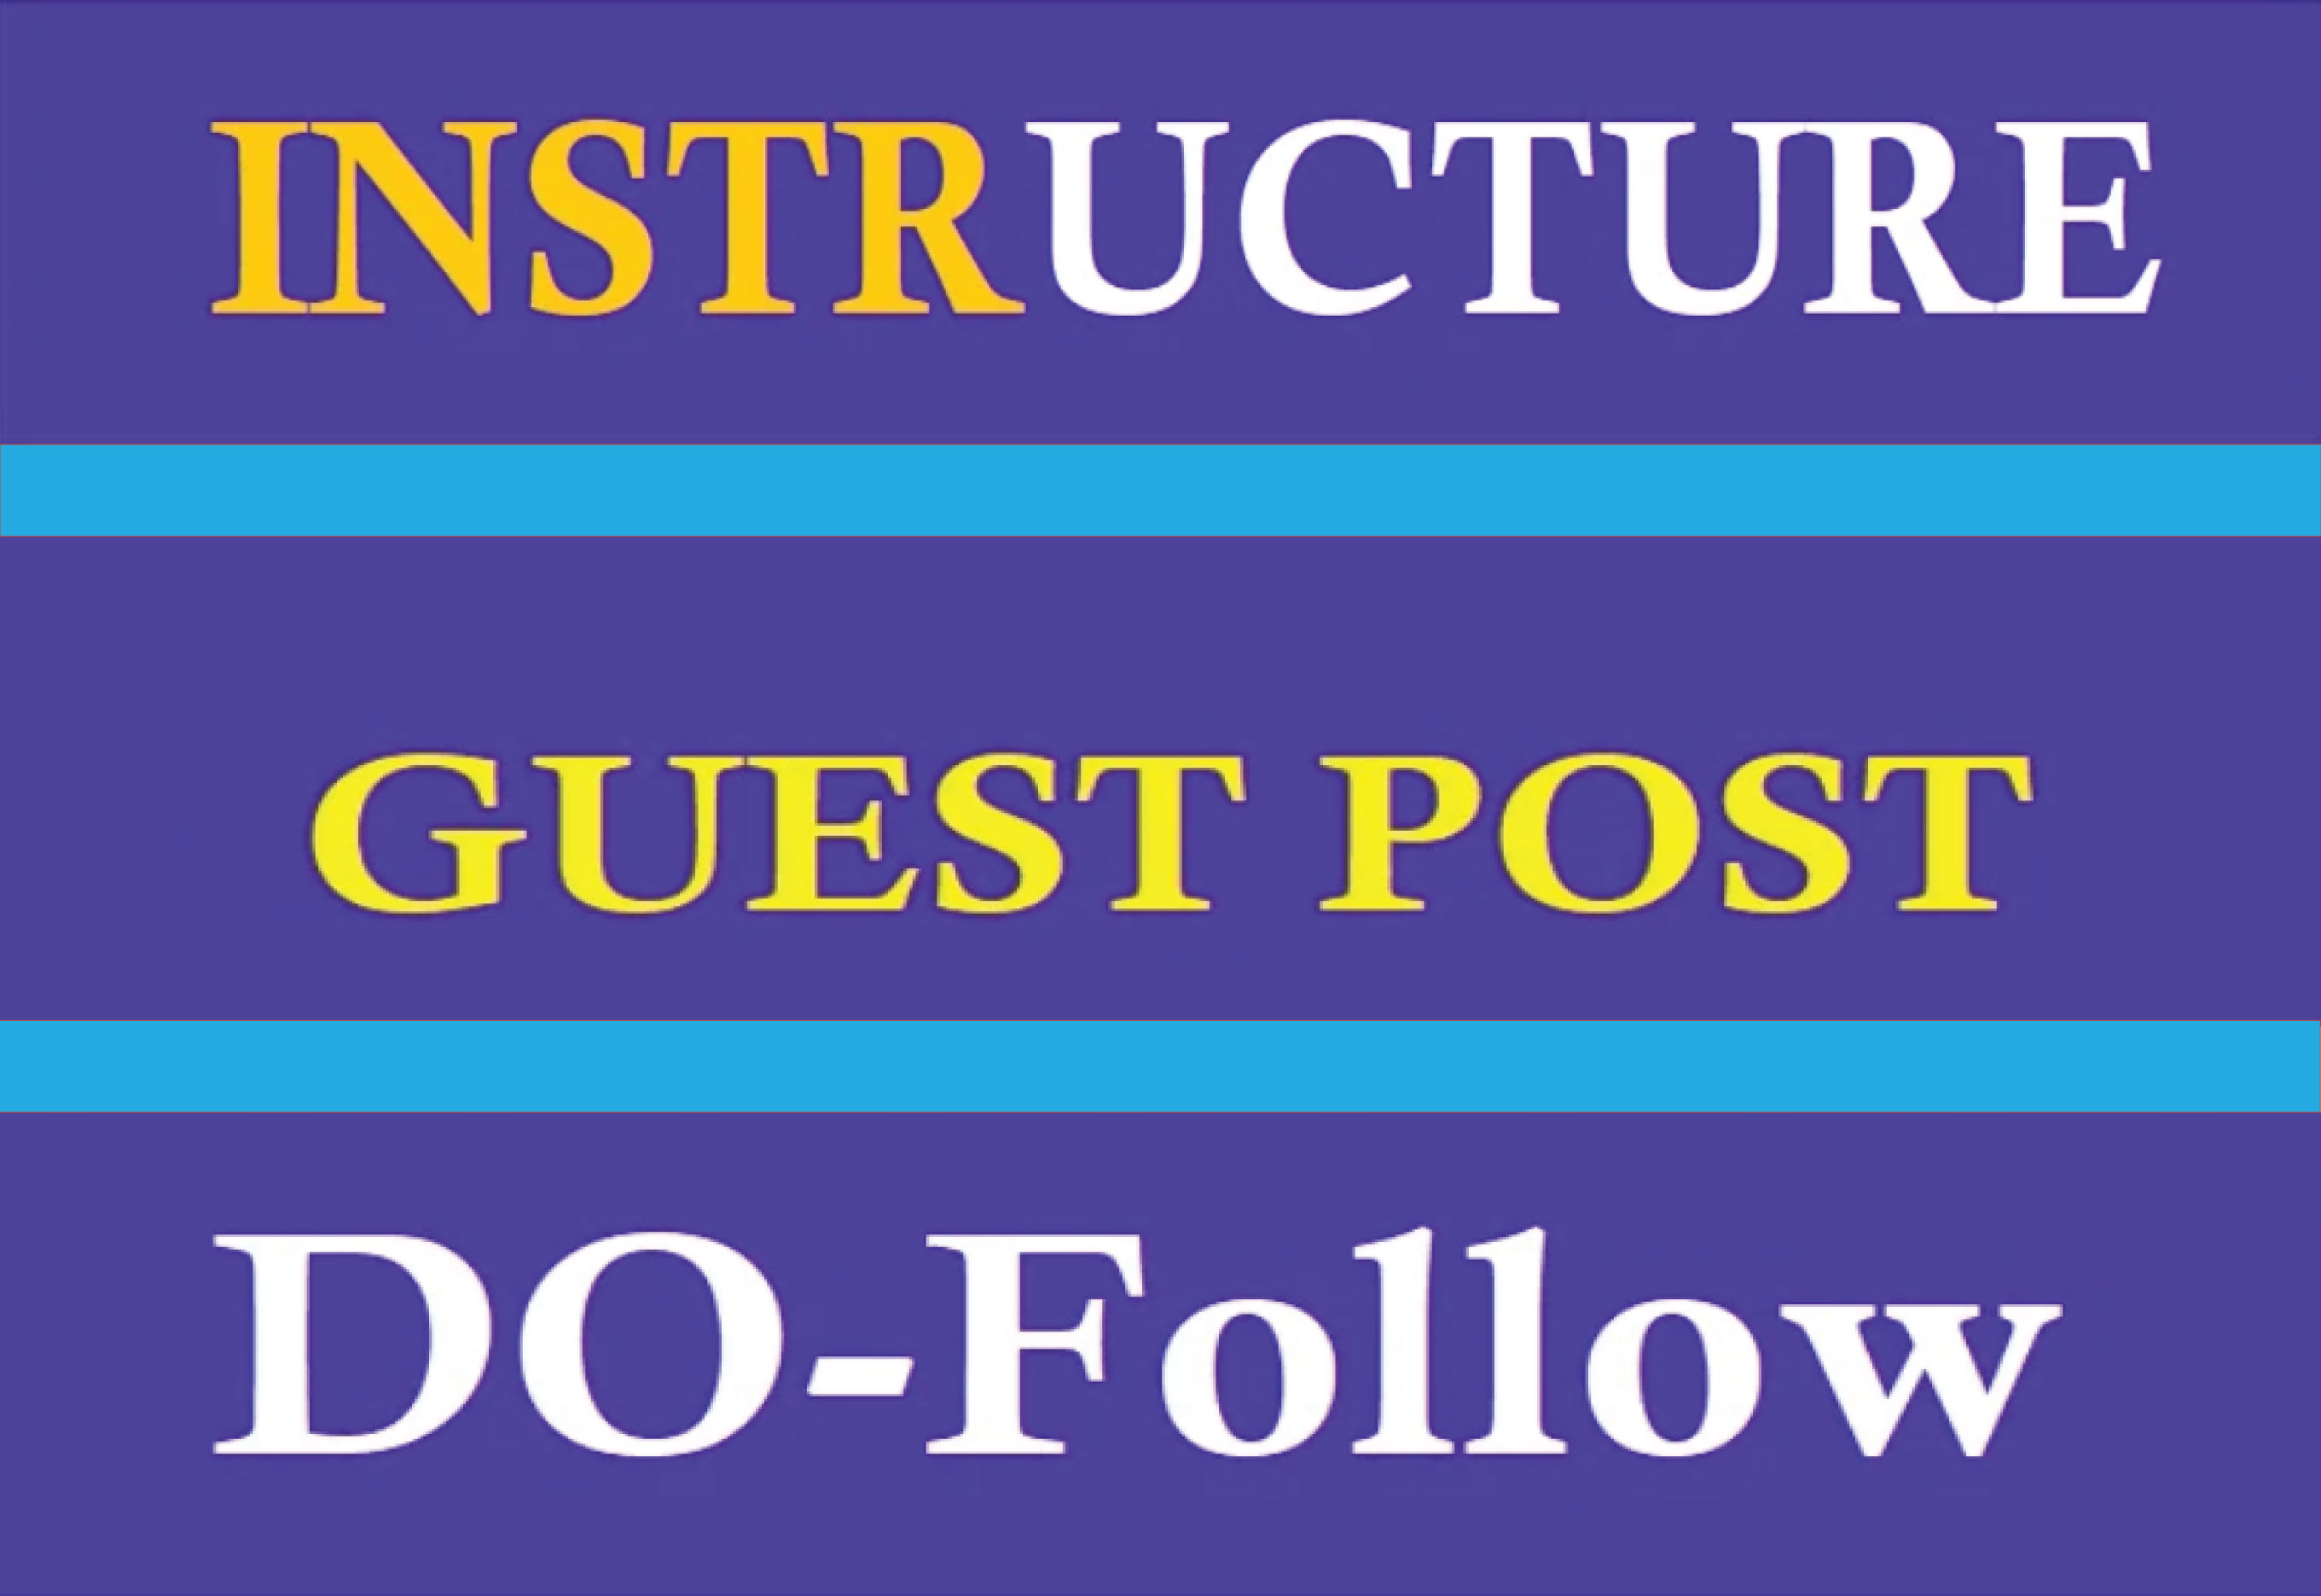 I will guest post on instructure with dofollow links